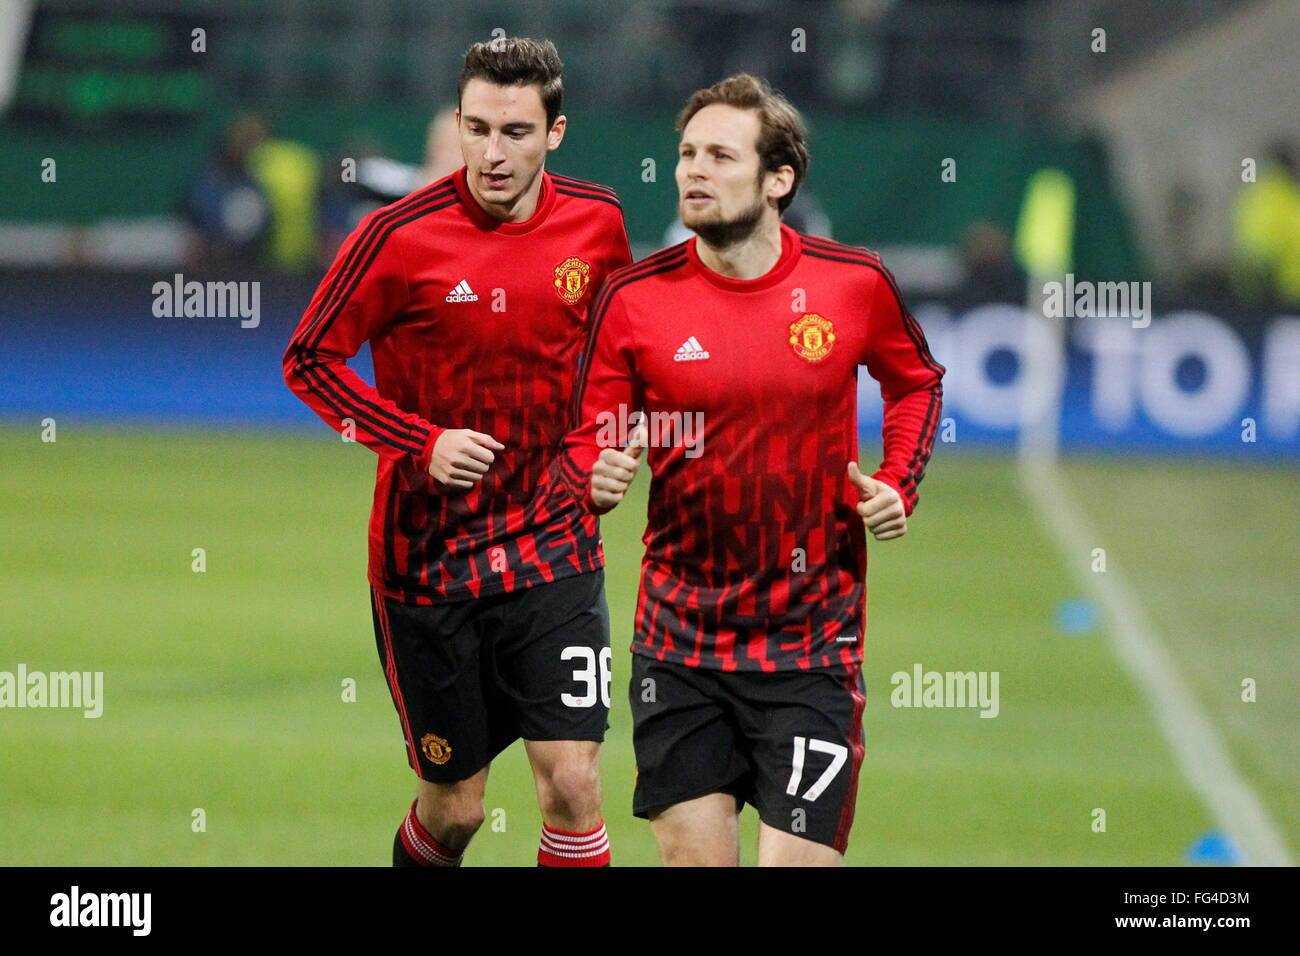 Daley Blind Stock Photos & Daley Blind Stock Images - Alamy